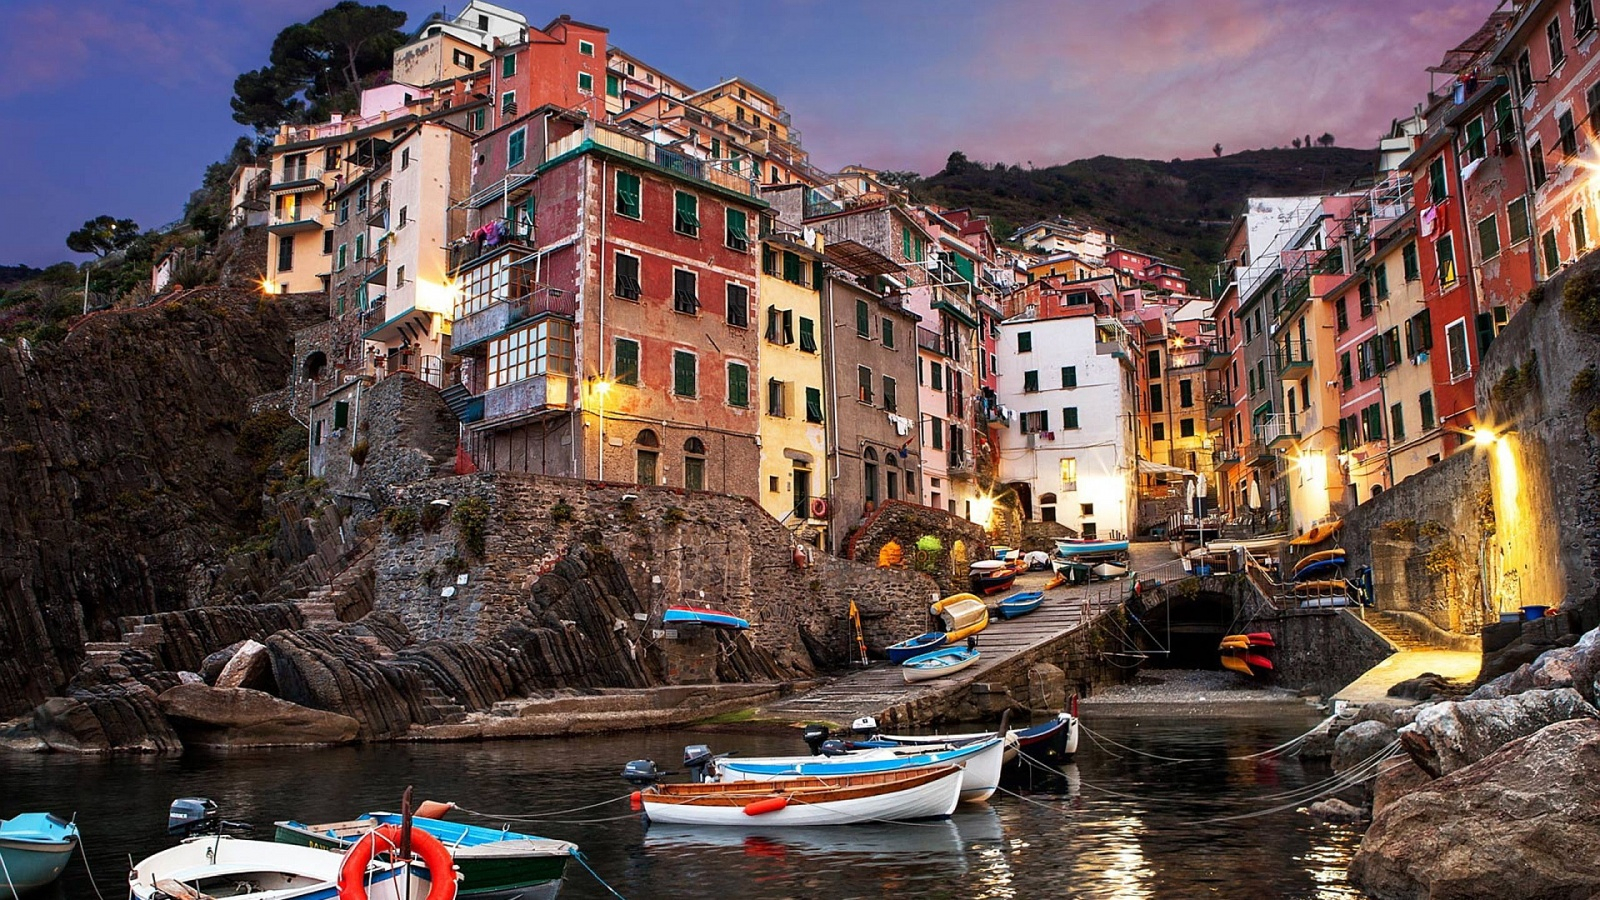 manarola liguria italy hd wallpapers free download lovely hd 822